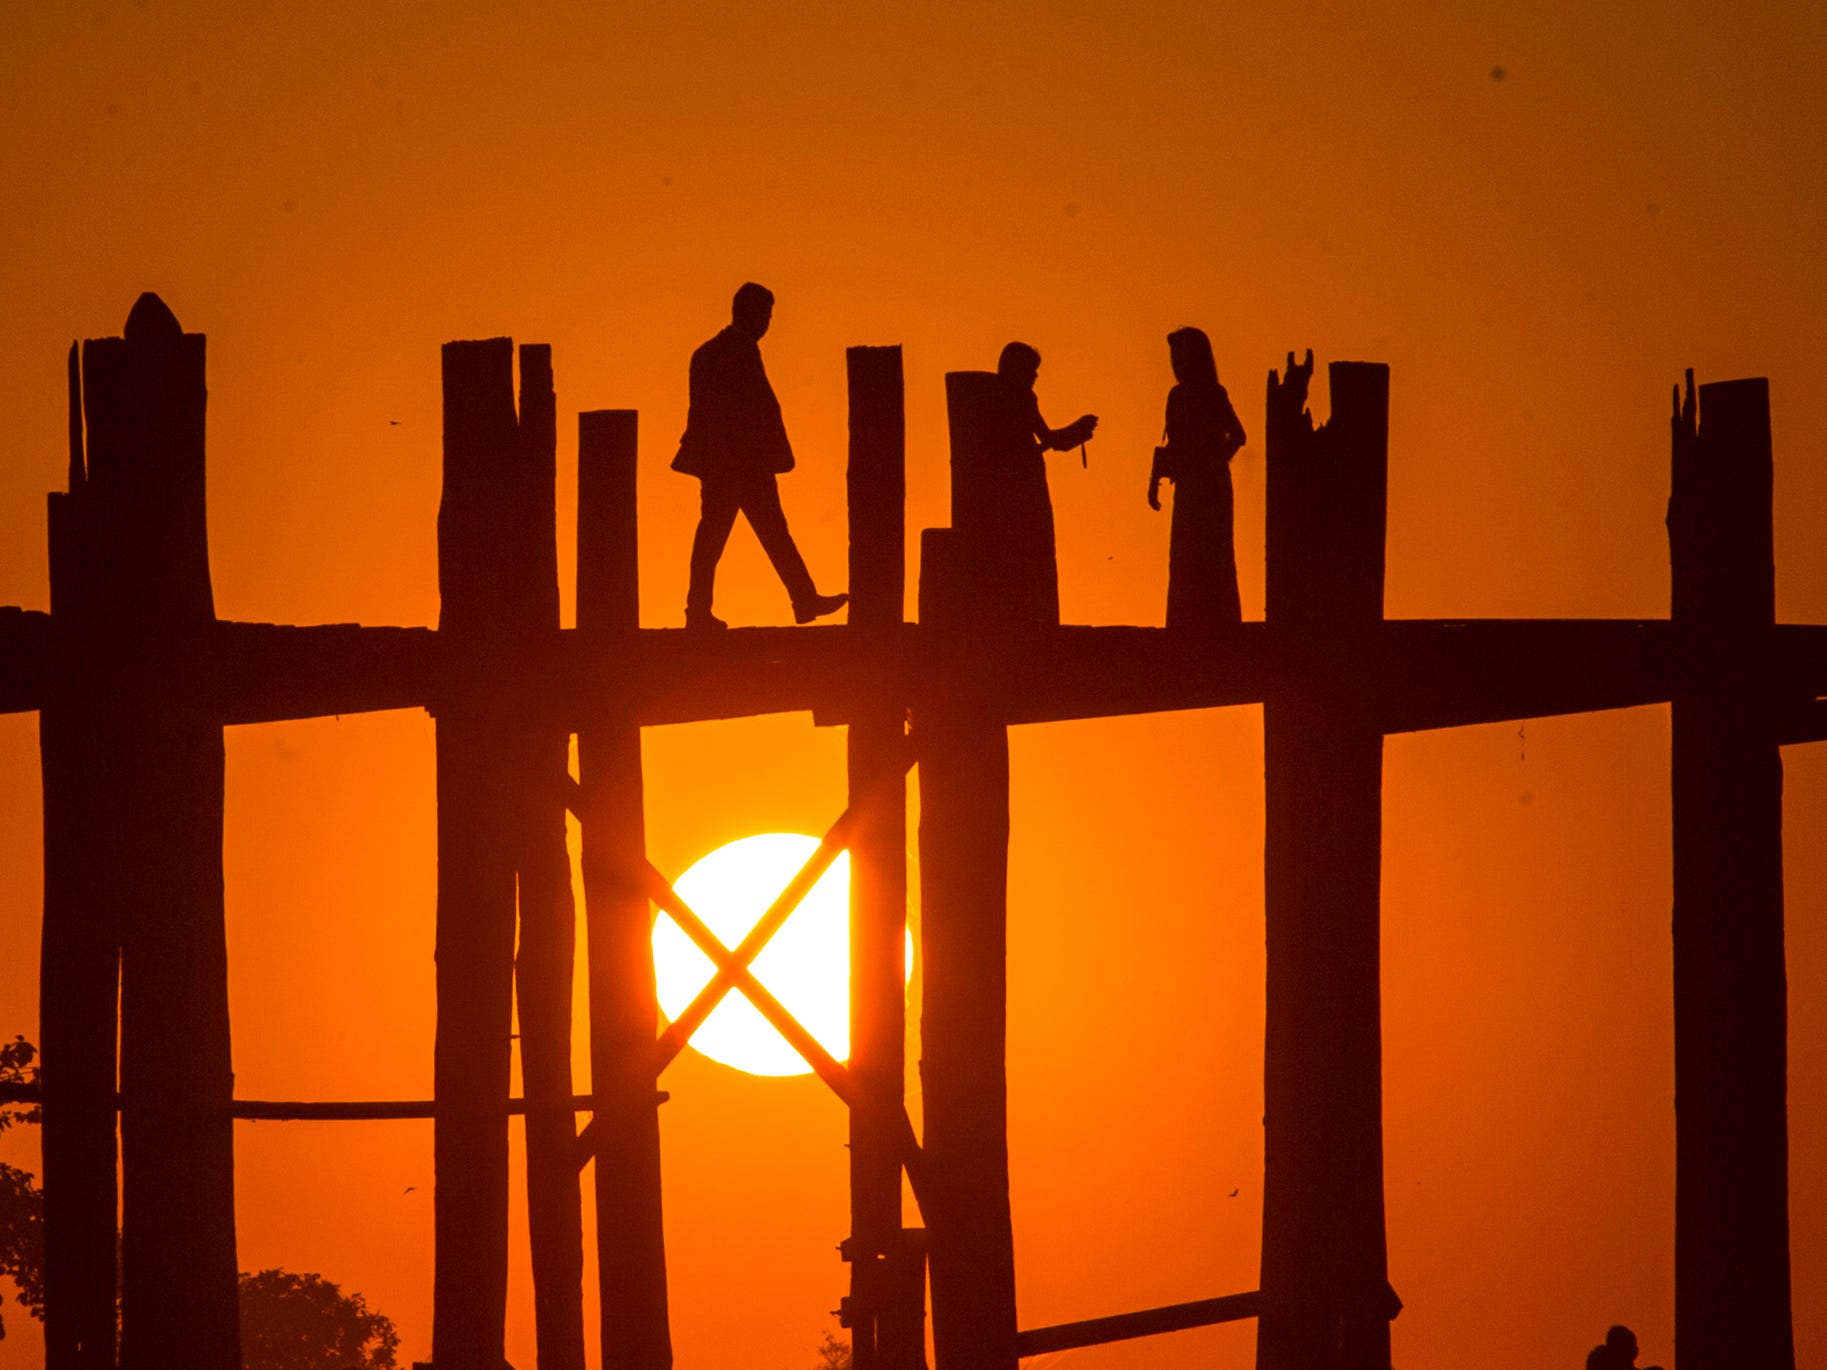 The last sunset of the year is seen over the U Paing (U Bein) Bridge at Taungthaman lake in Mandalay, Myanmar. The footbridge stretches over Taungthaman Lake connecting its two banks near Amarapura. Built by village mayor U Paing around 1850, it is considered the longest teakwood bridge in the world.